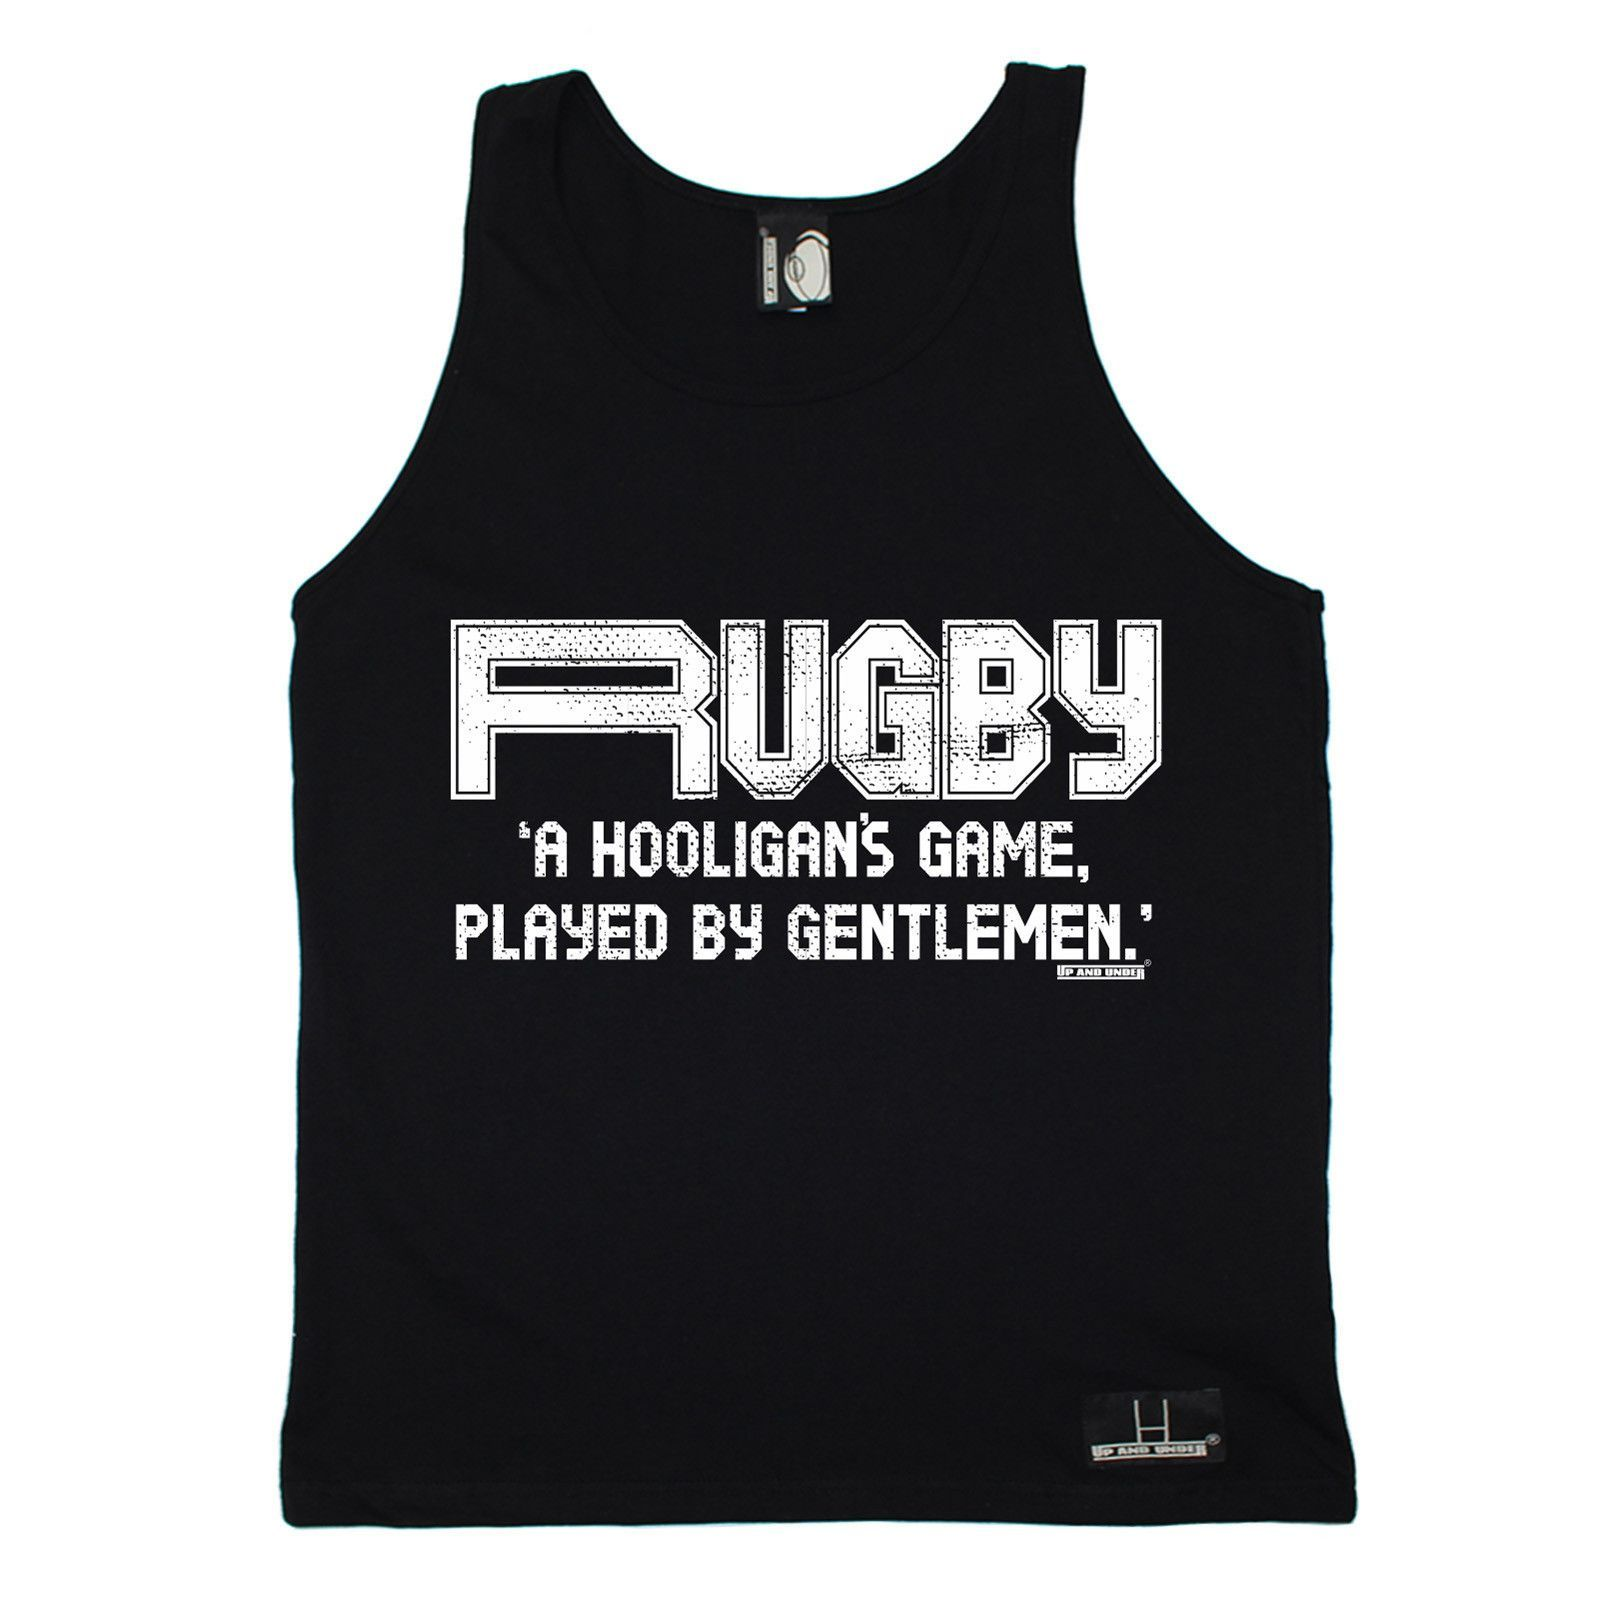 Up And Under A Hooligan's Game Played By Gentlemen Rugby Vest Top